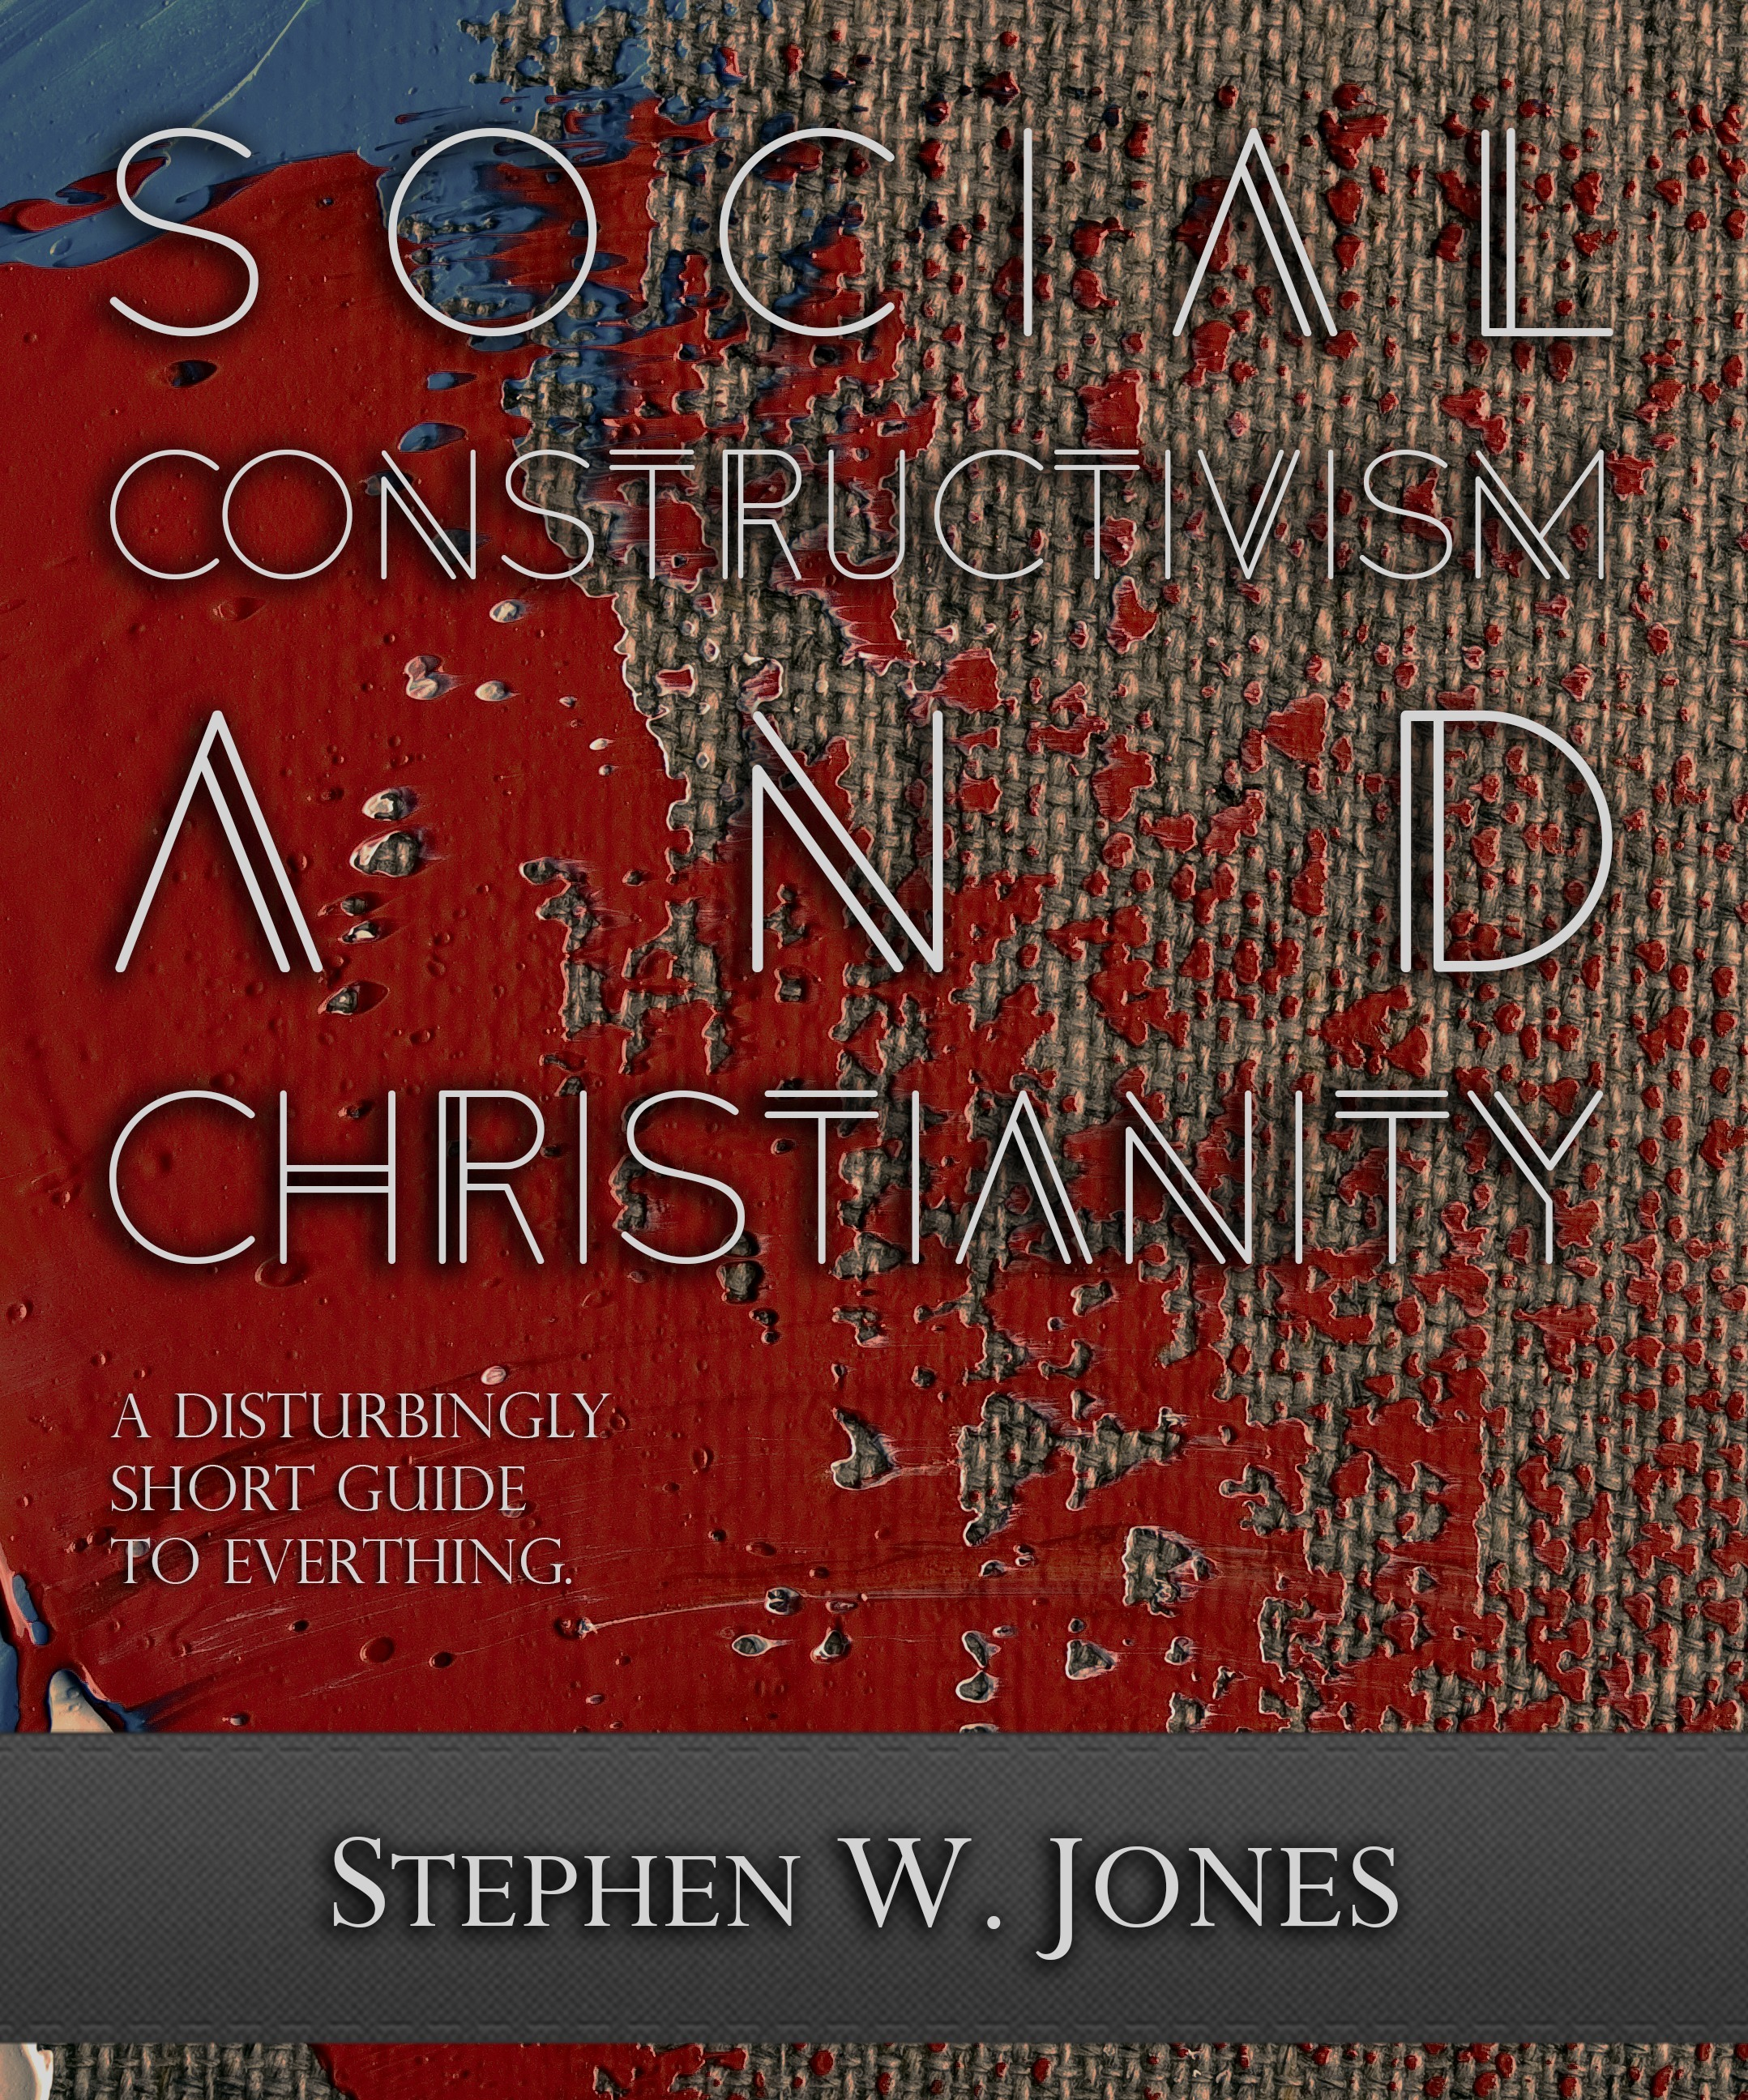 Social Constructivism and Christianity: A Disturbingly Short Guide to Everything Stephen W. Jones